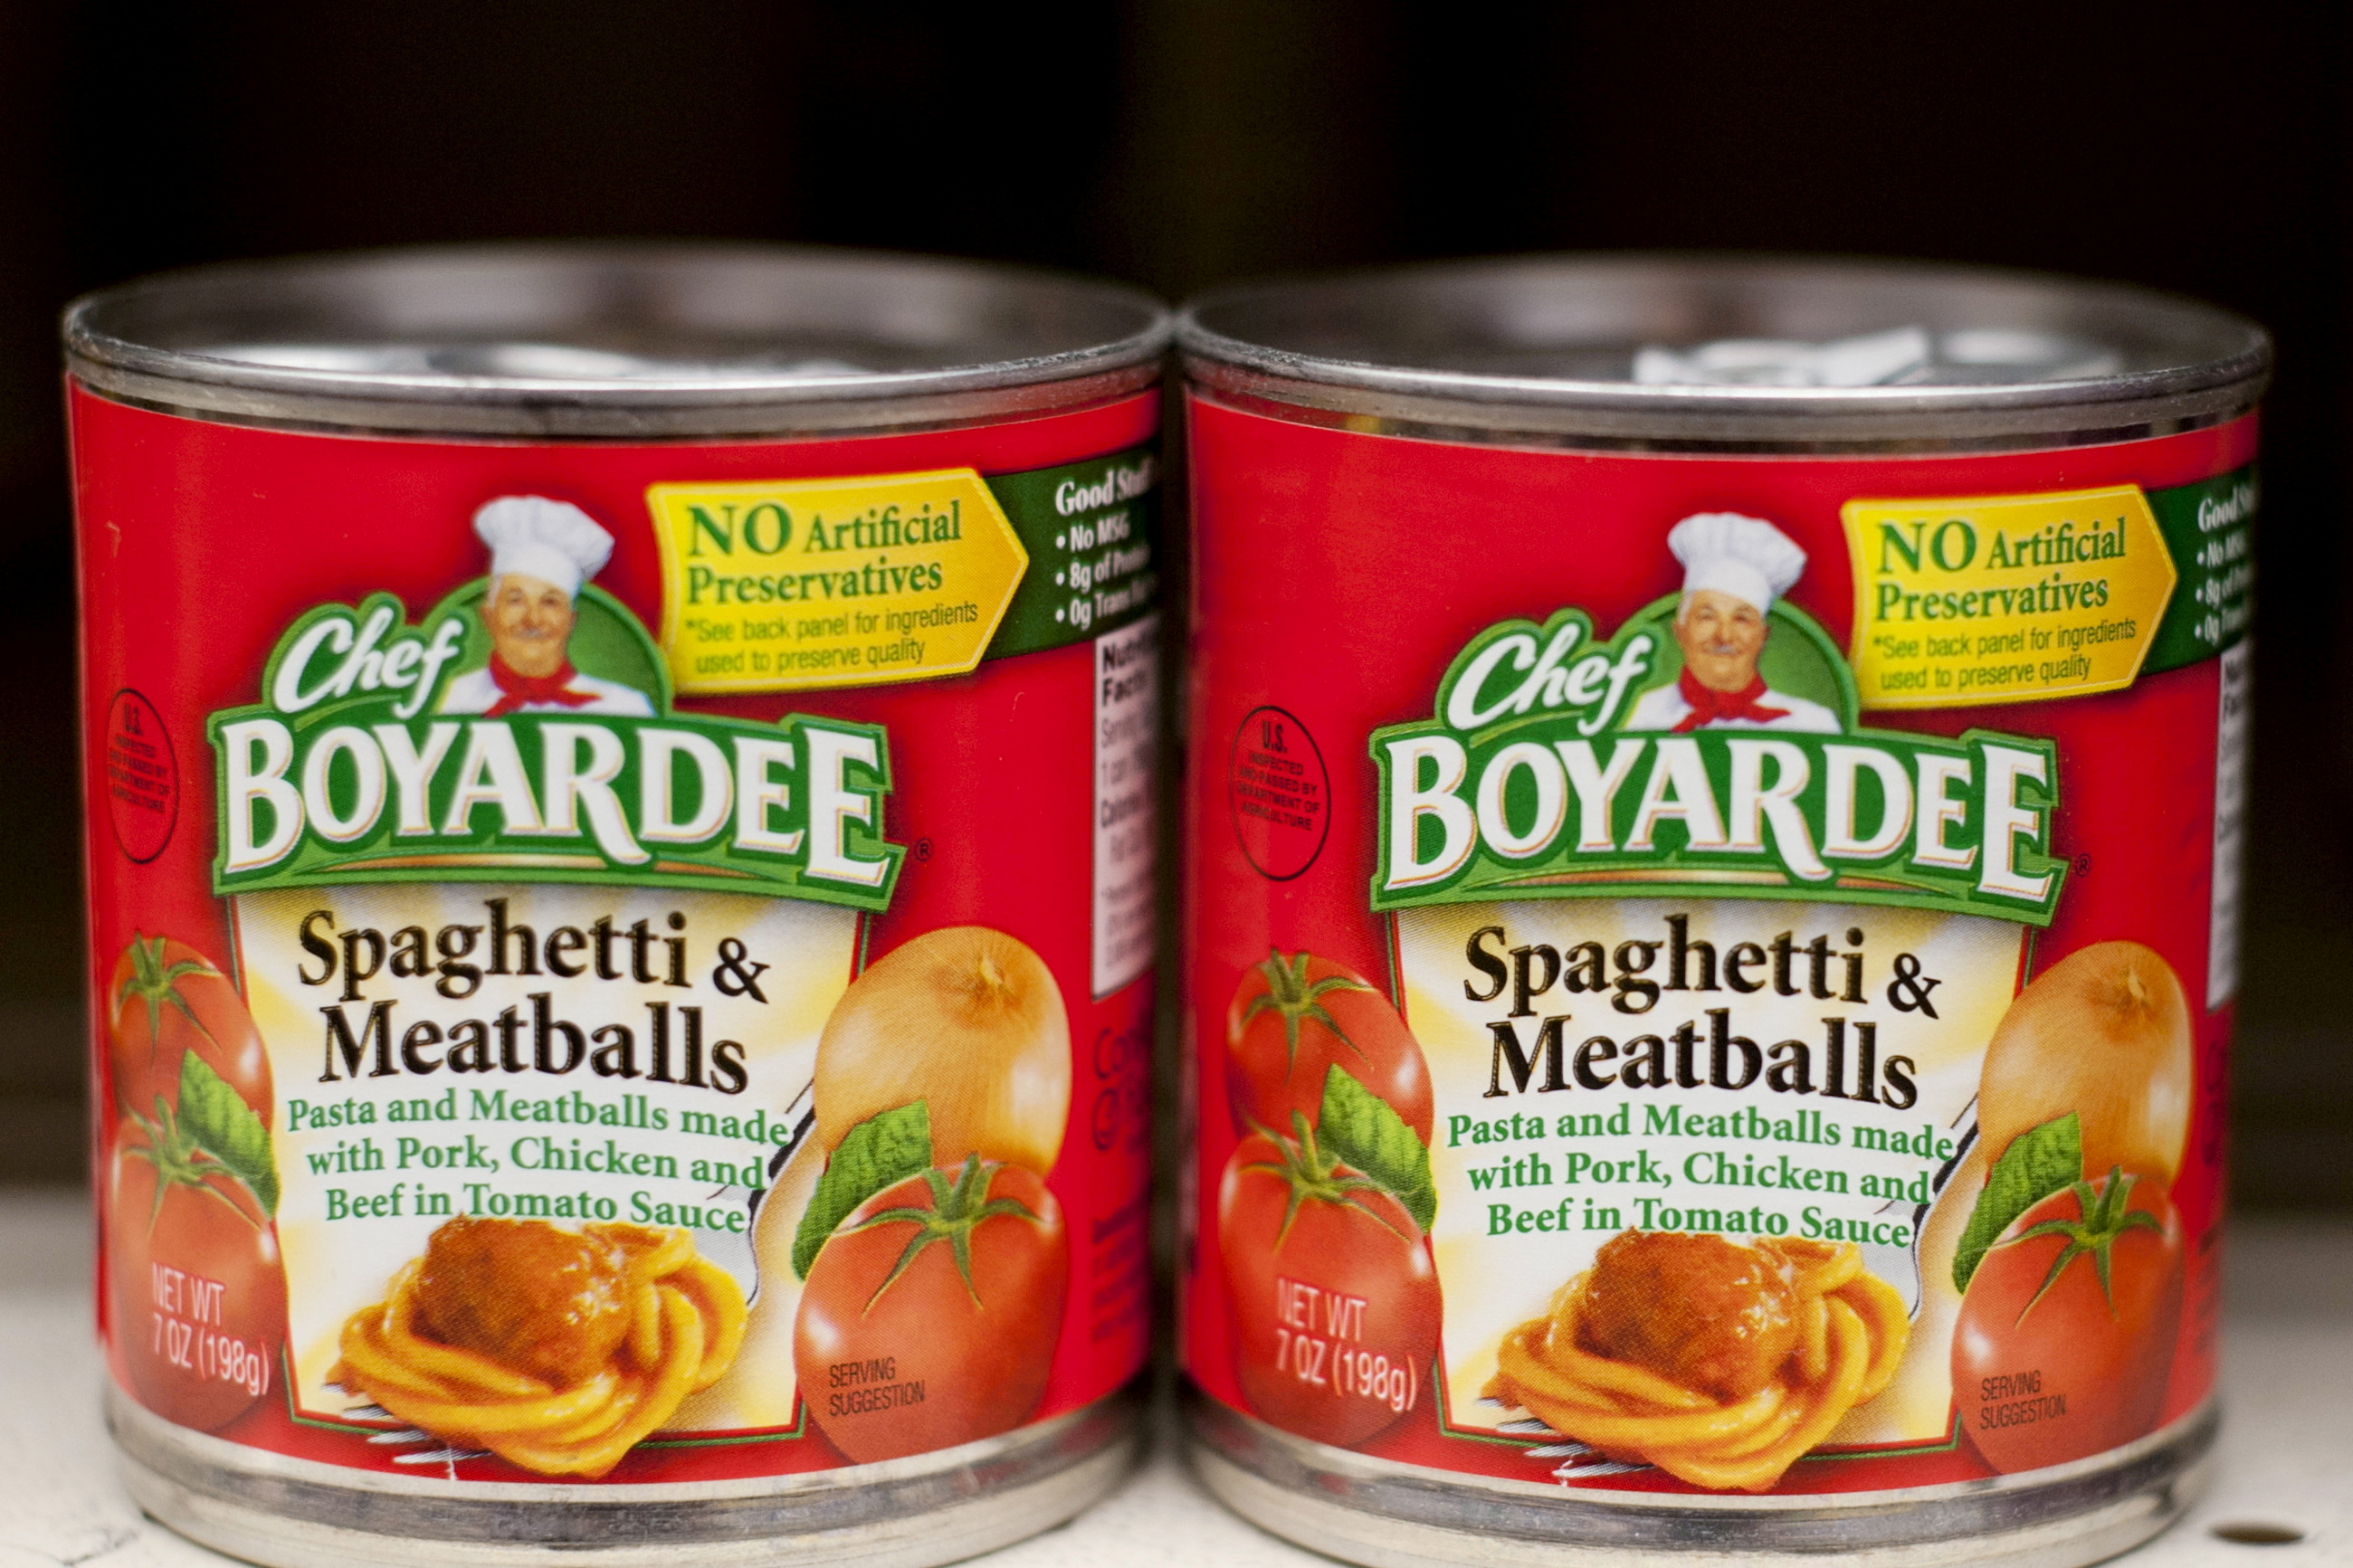 Cans of Chef Boyardee, a product of ConAgra Foods, are seen on the shelf of a grocery store in the Brooklyn borough of New York December 16, 2015.   REUTERS/Darren Ornitz/File Photo